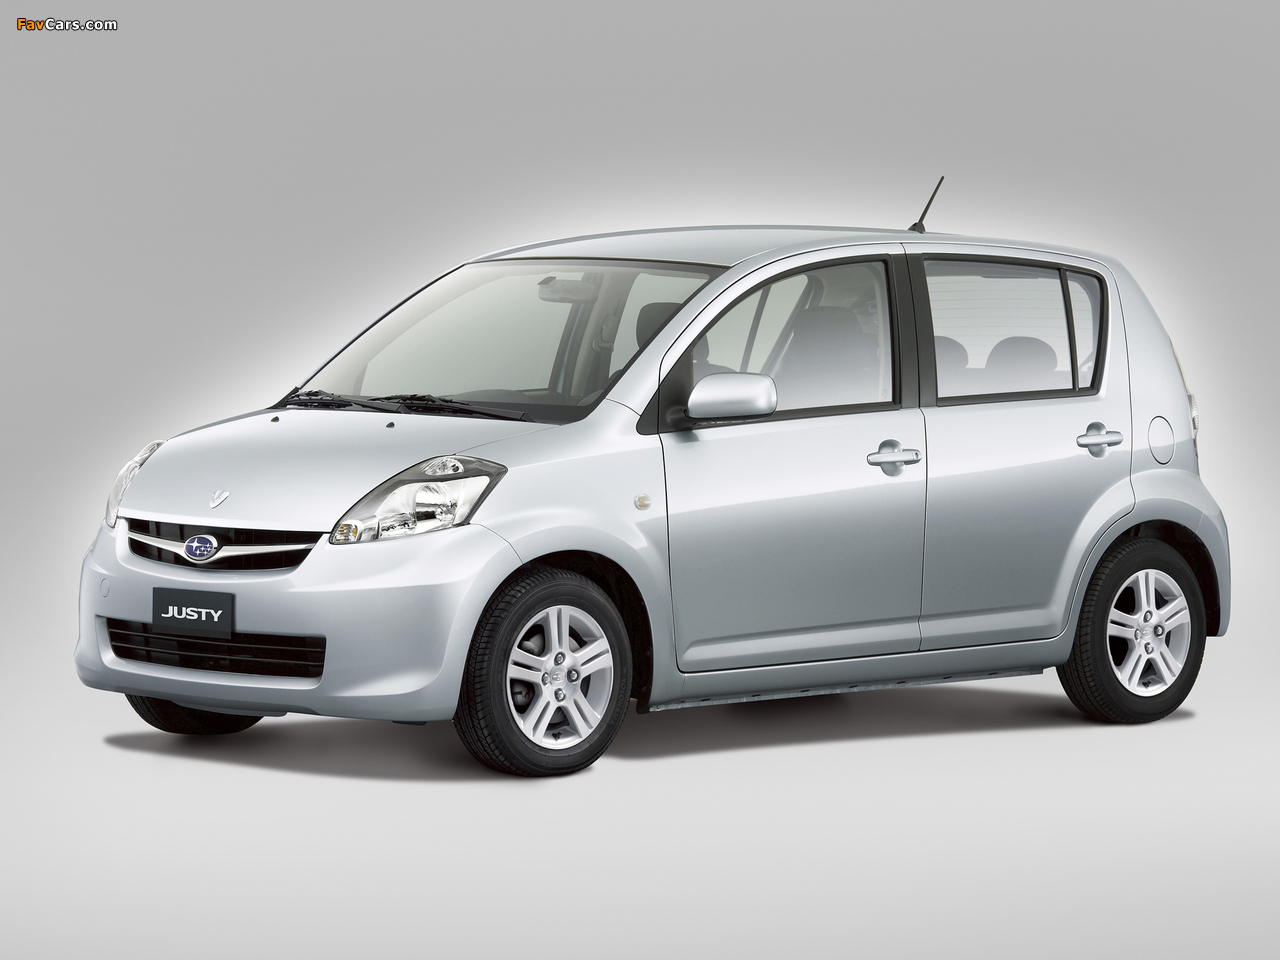 Subaru Justy 2007 pictures (1280 x 960)